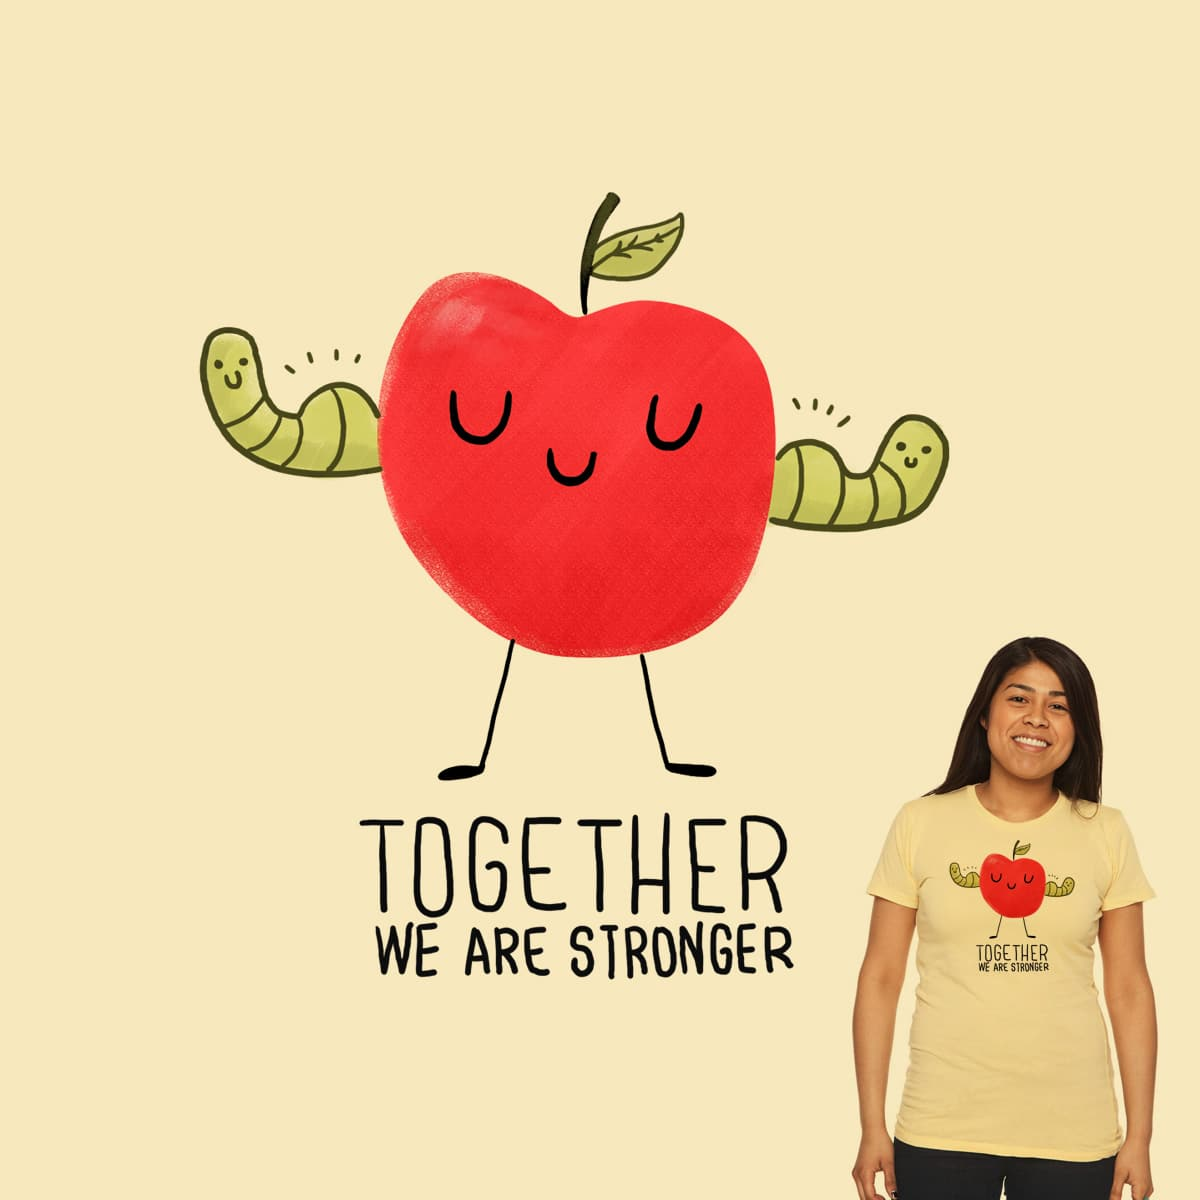 Together we are stronger by ppmid on Threadless